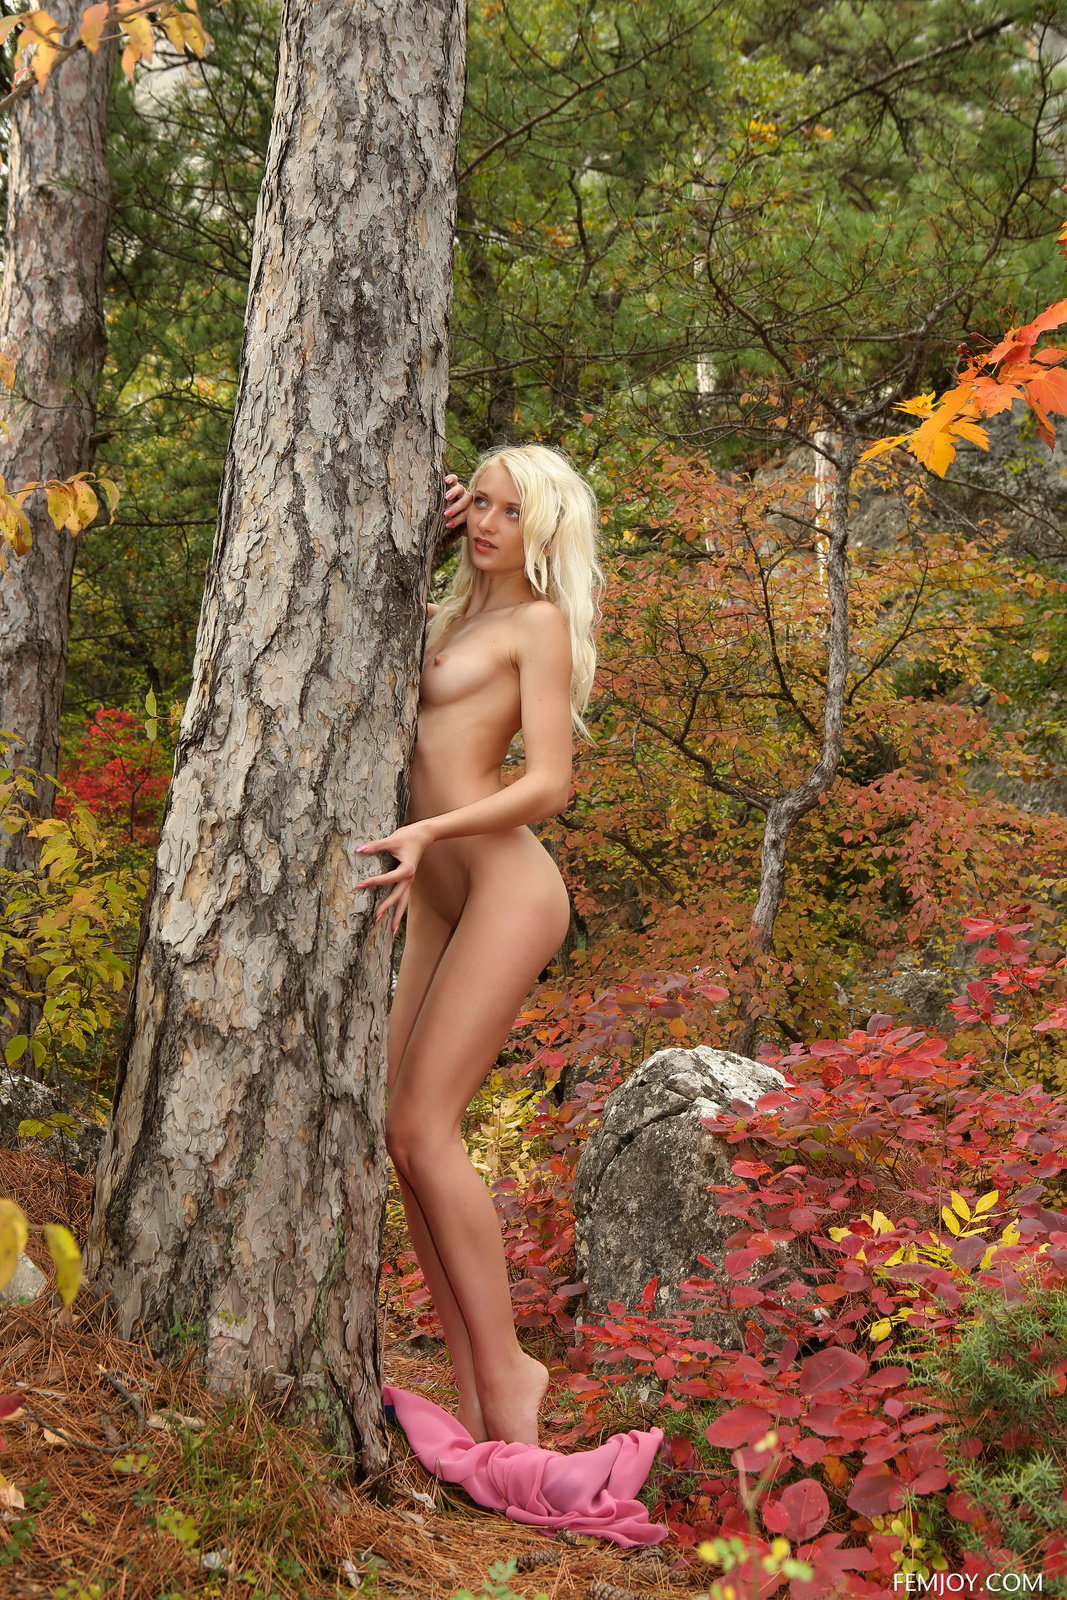 Stunning Naked Girl Adelia Posing In The Autumn Woods By Femjoy 16 Photos  Erotic Beauties-4618